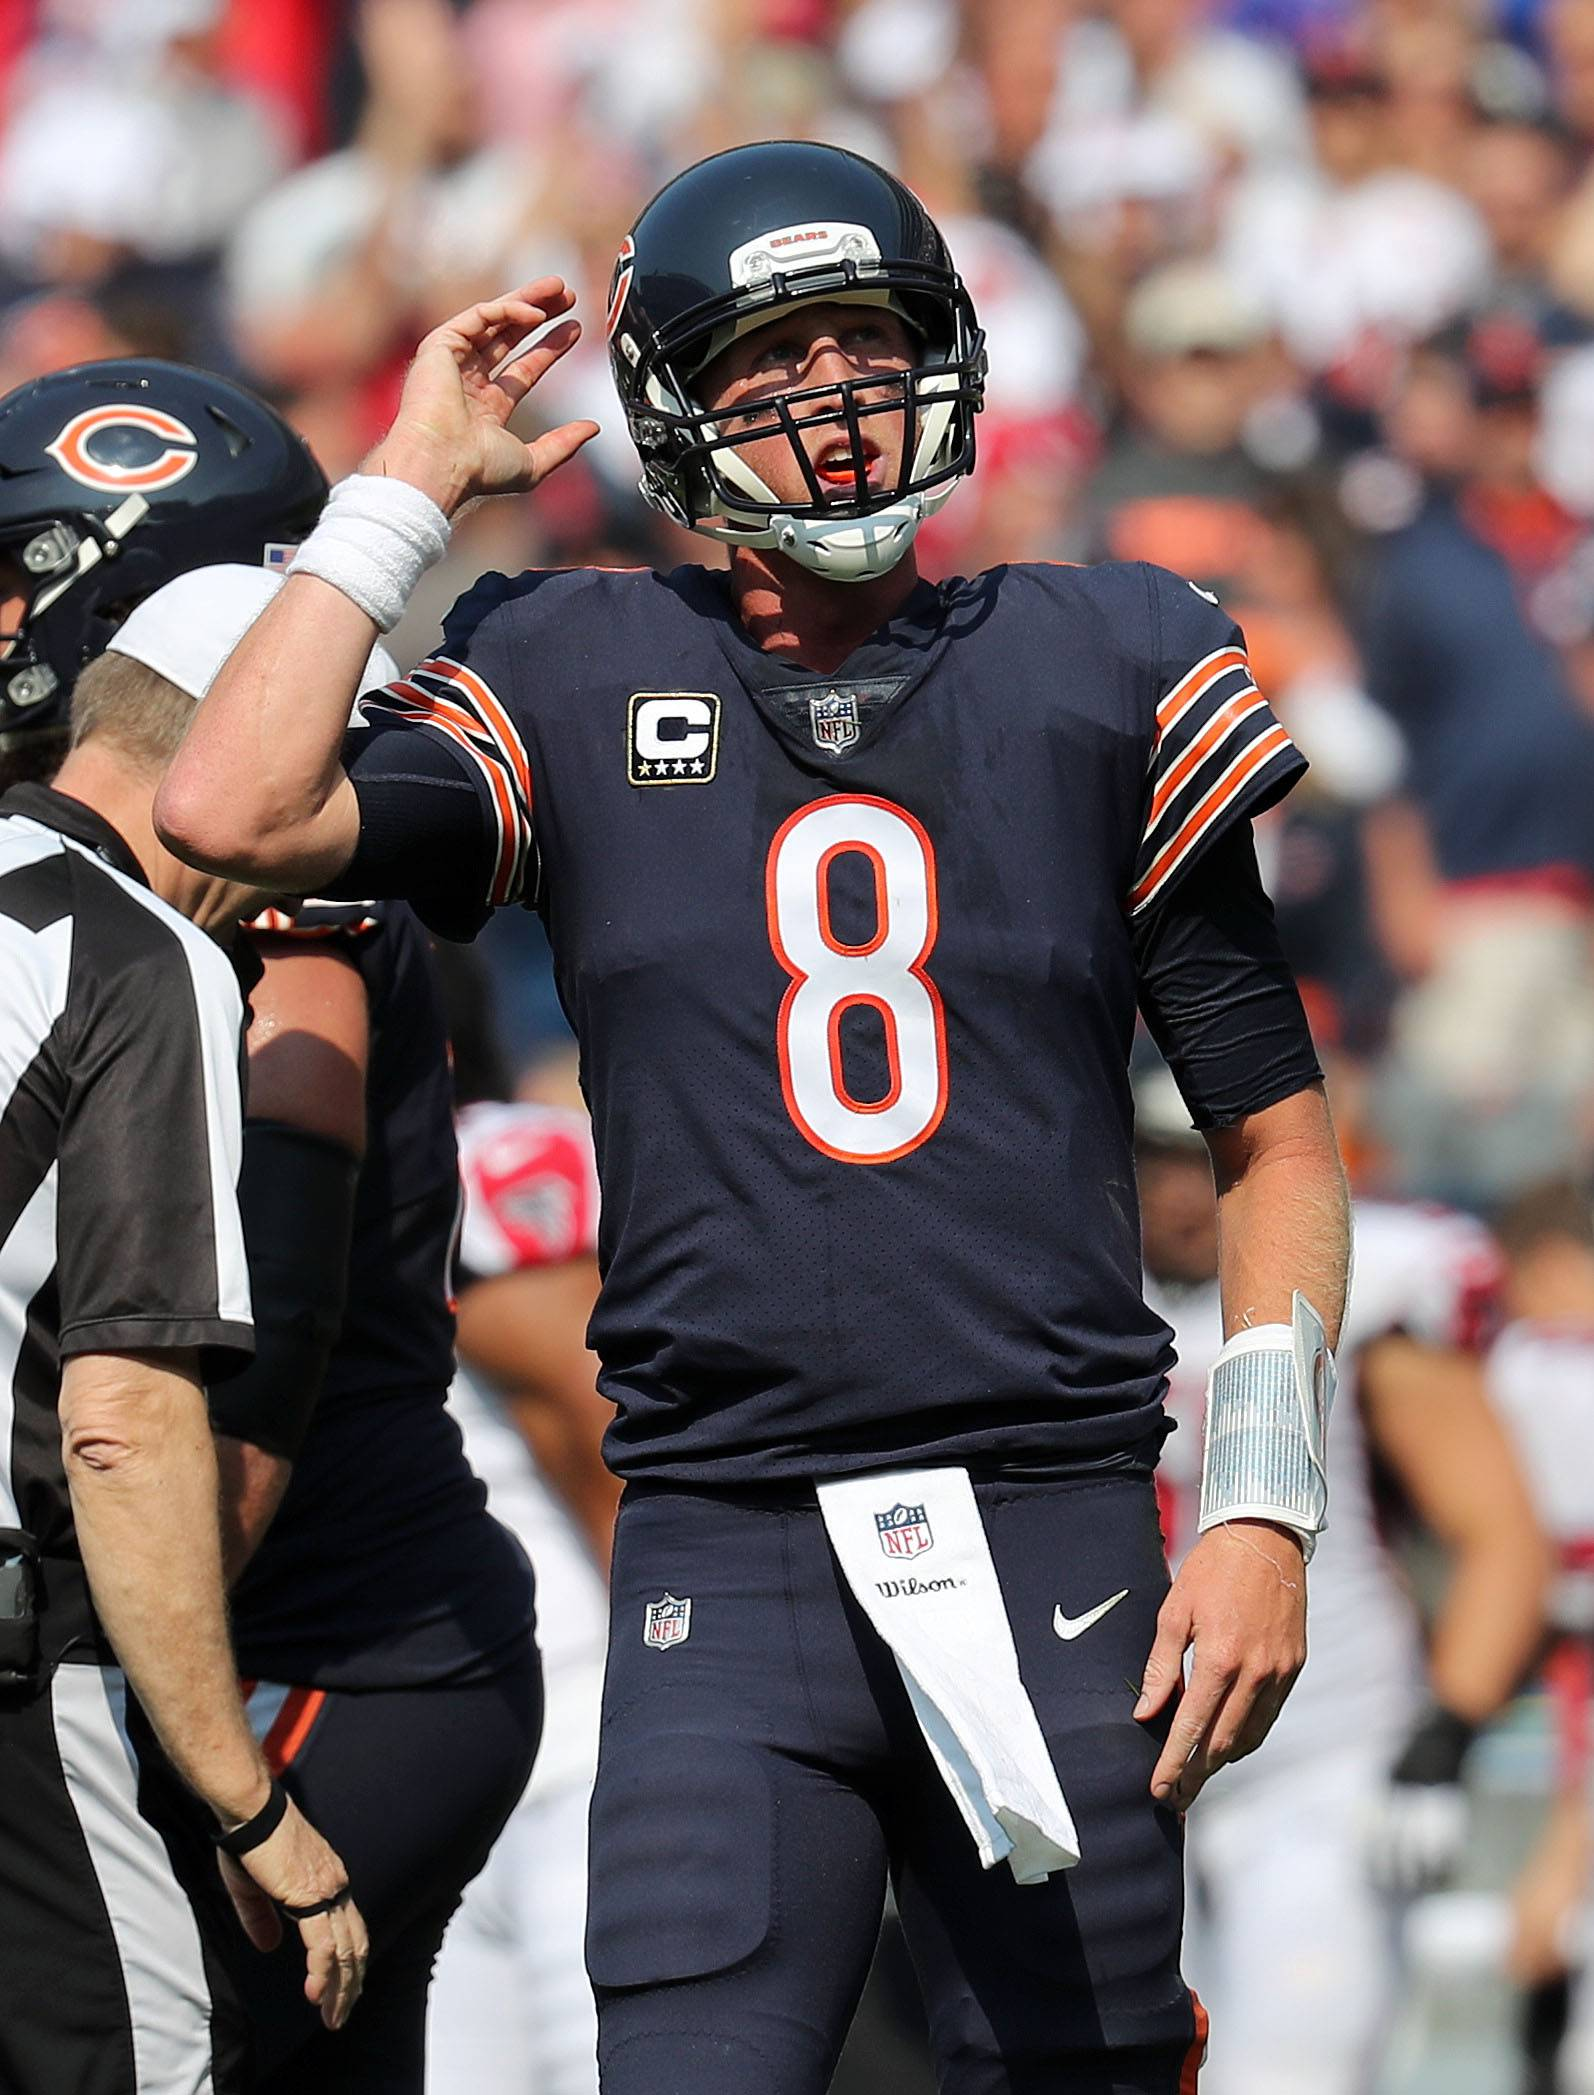 Chicago Bears quarterback Mike Glennon reacts after getting sacked to end the game during their game against the Atlanta Falcons Sunday, September 10, 2017, at Soldier Field on Chicago.